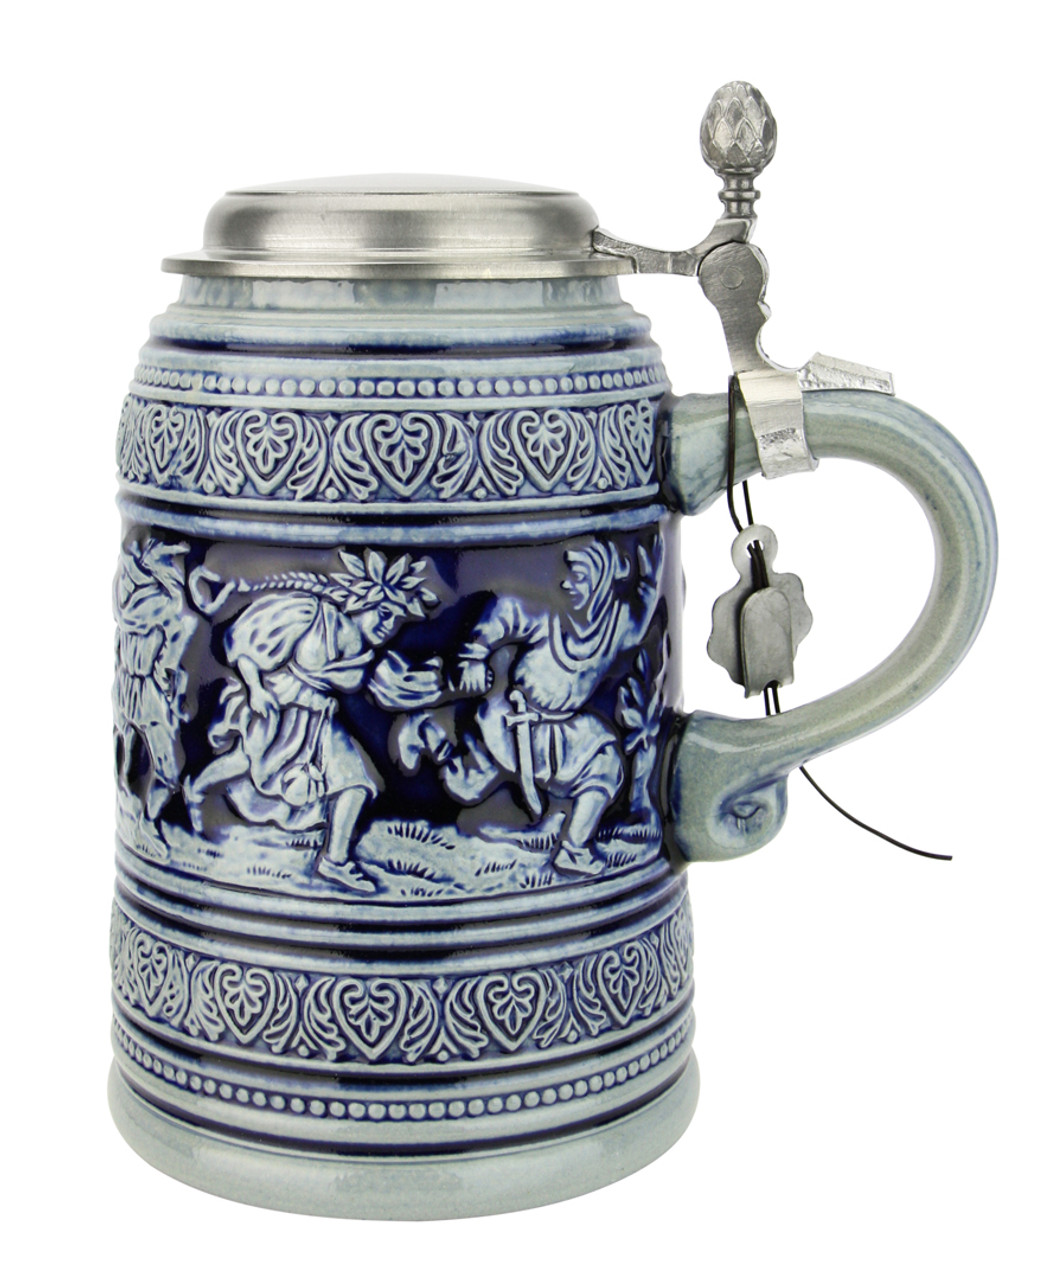 Zoller and Born Limitat 2003 Beer Stein